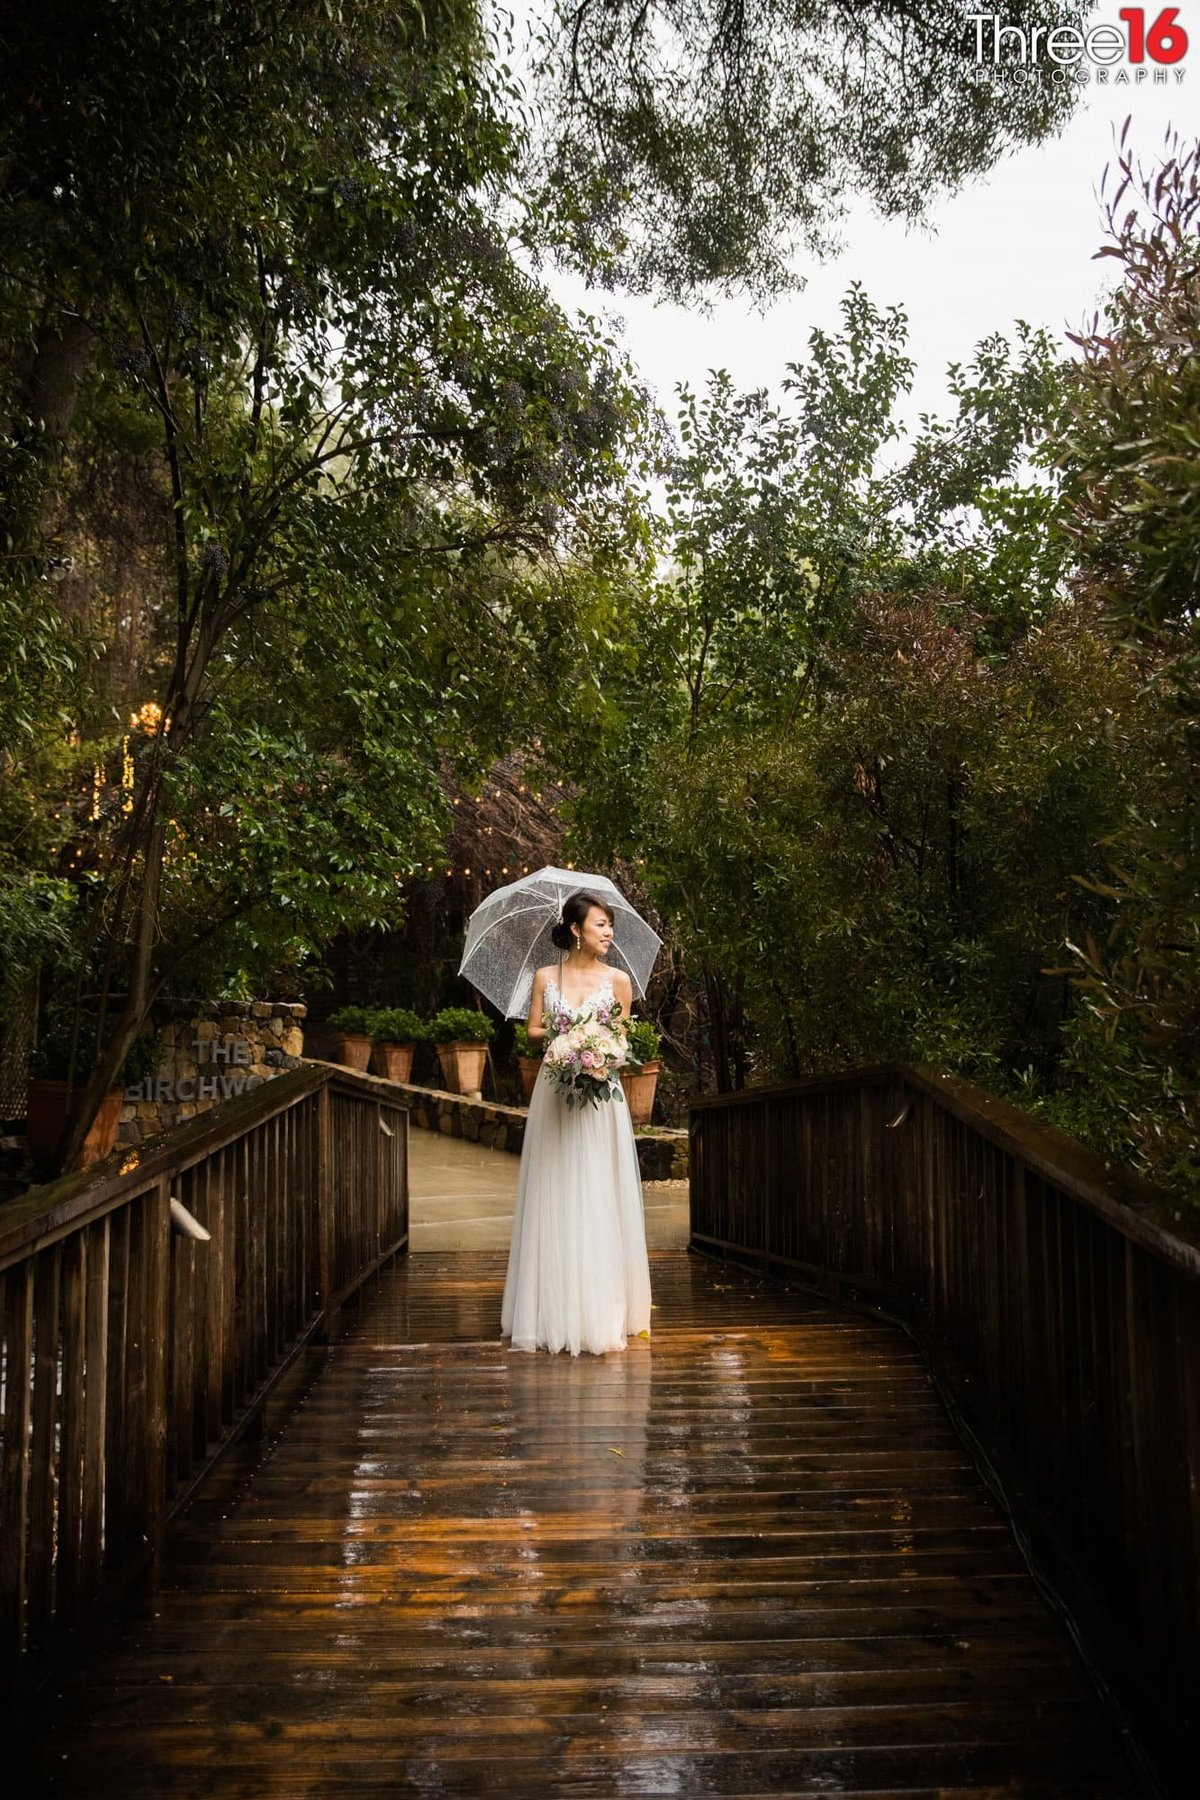 Bride posing on a wooden bridge with an umbrella during a light rainfall